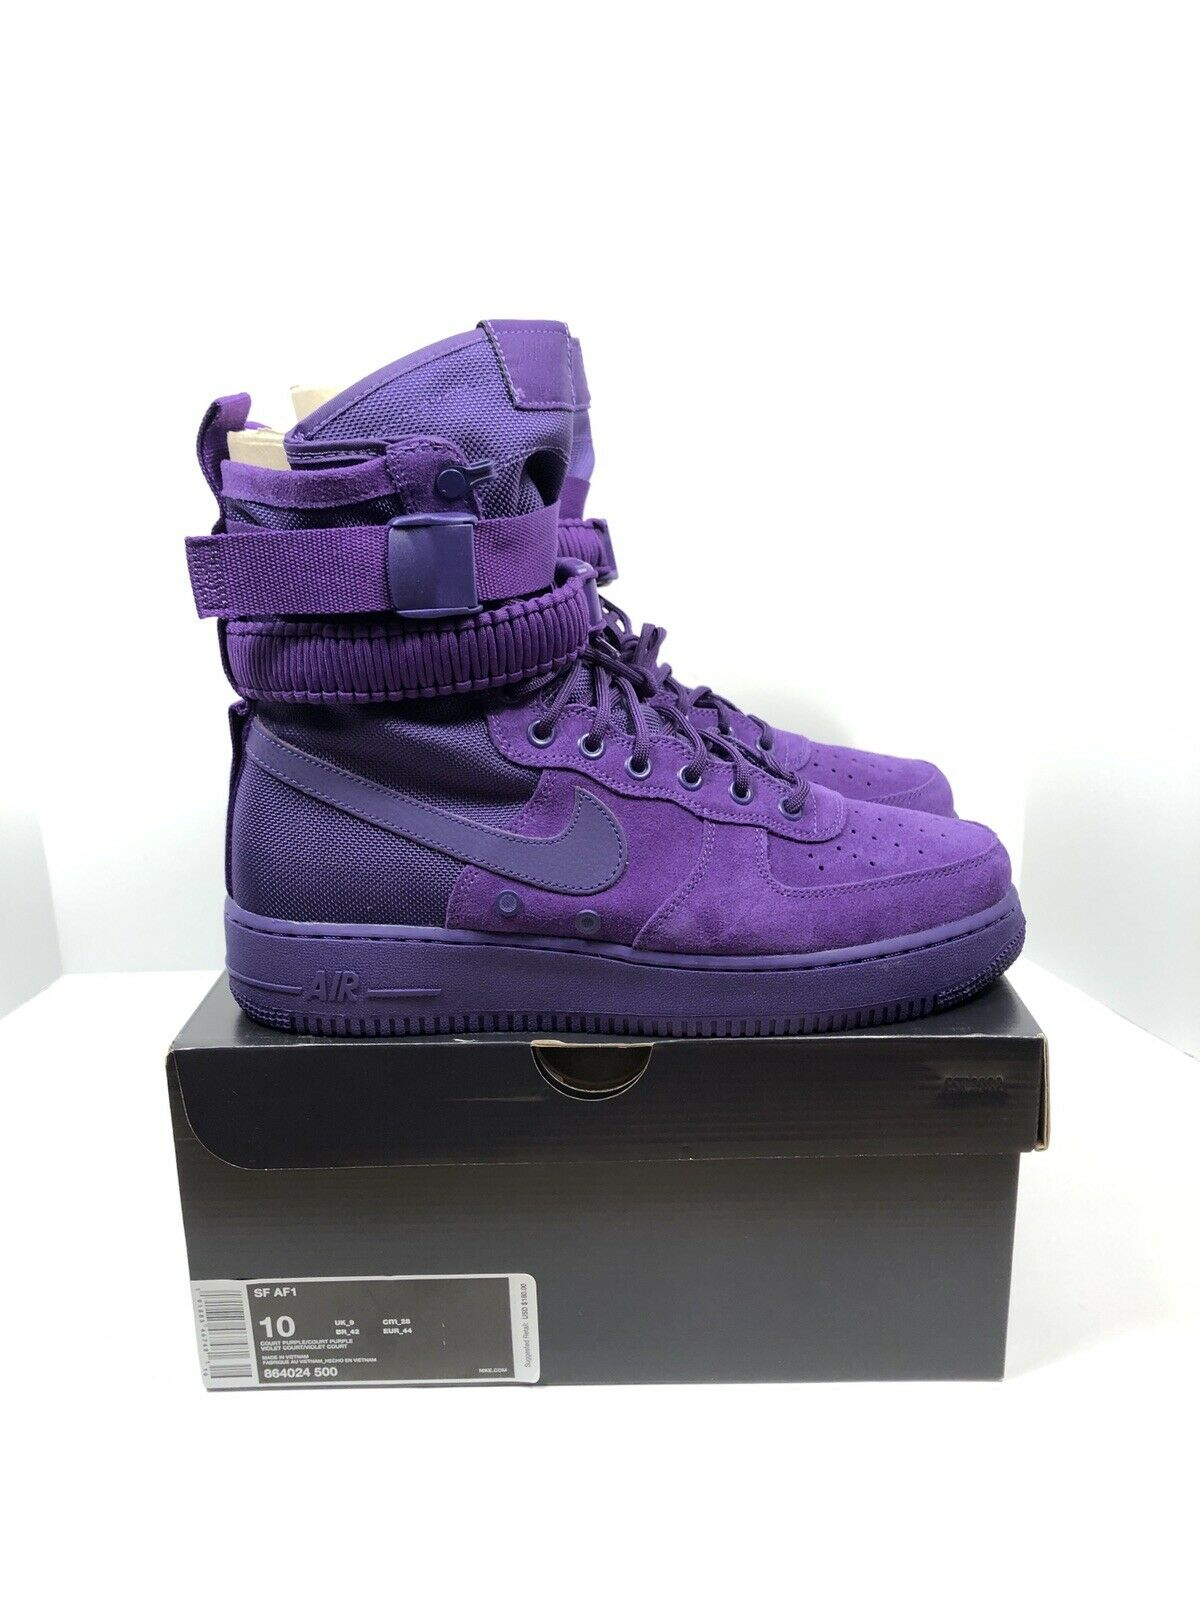 Nike Special Force Air Force 1 Court Purple Mens Size 10 Womens Size 11.5  150